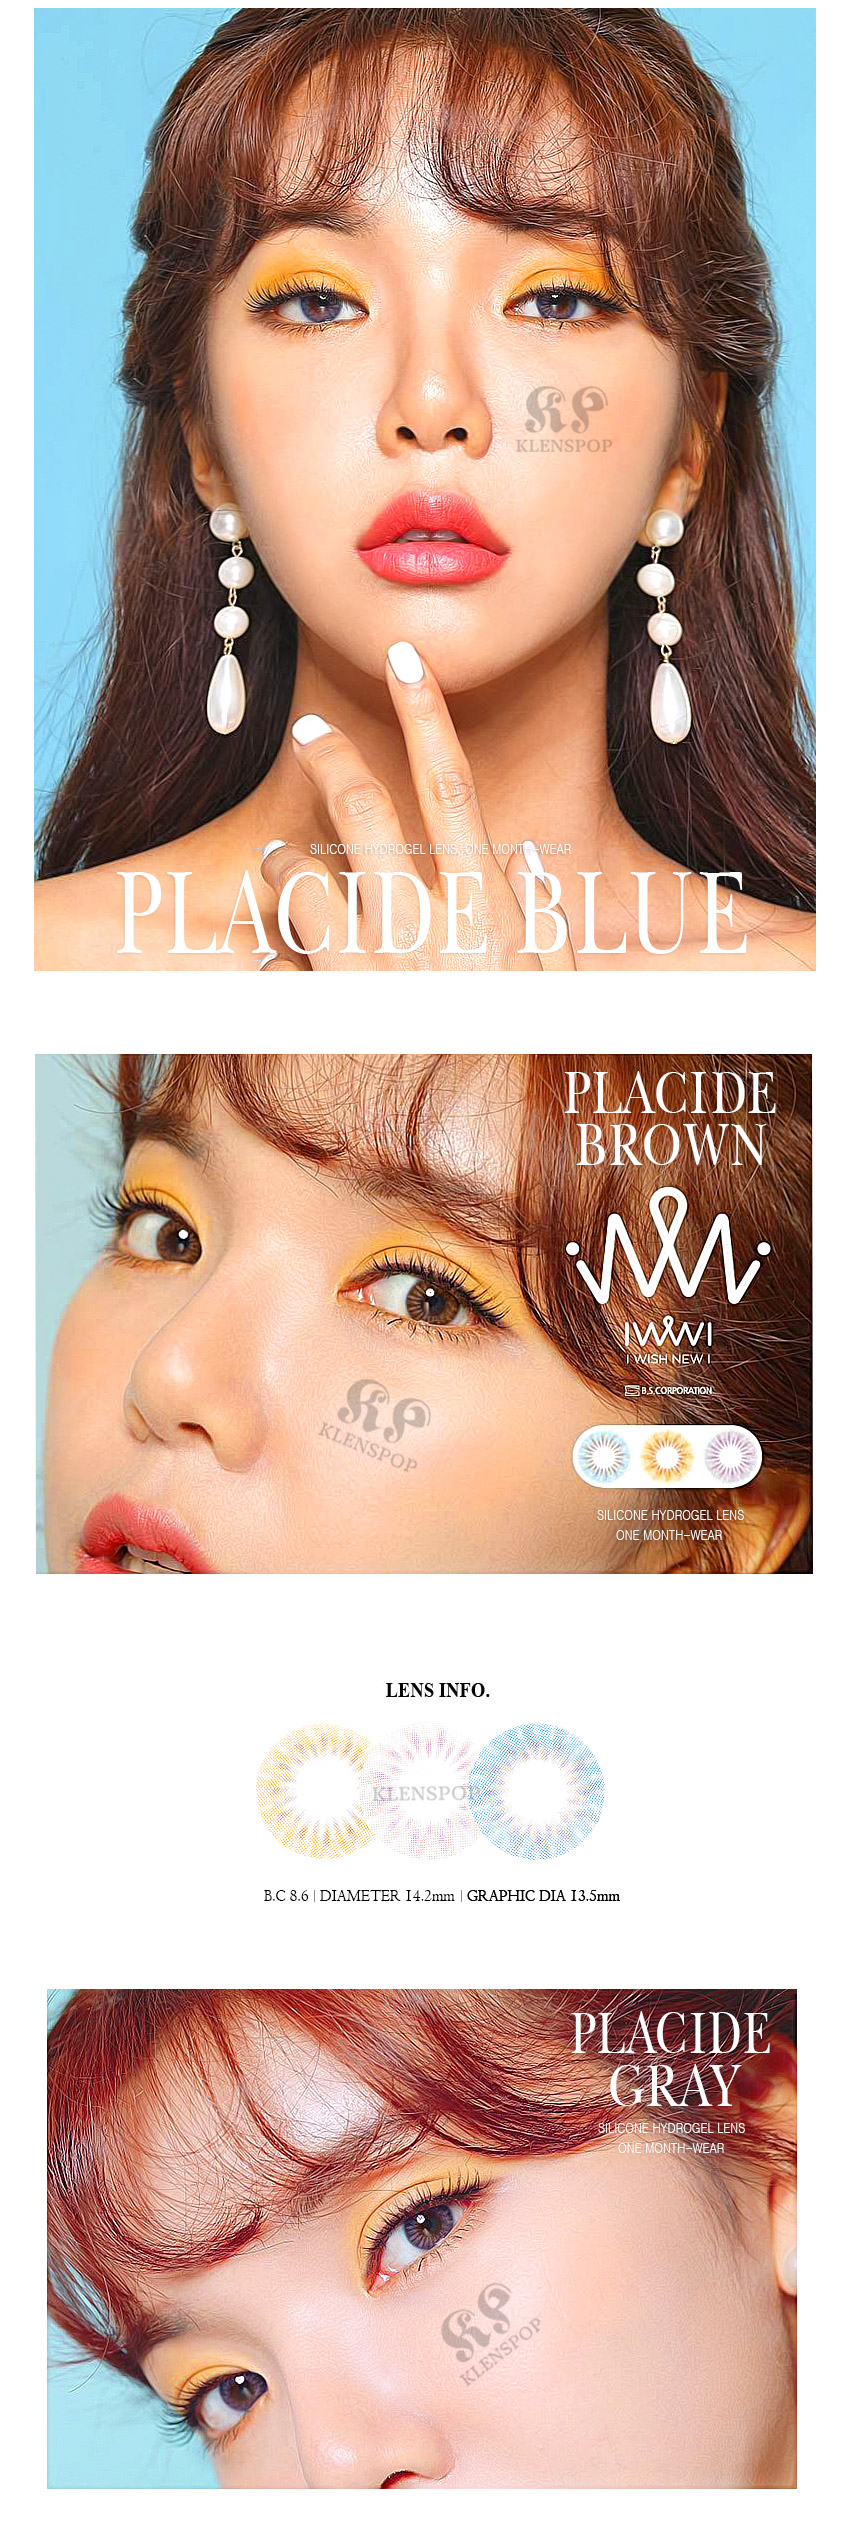 buy-bs-corporation-placide-colored-eye-contacts-klenspop-3.jpg